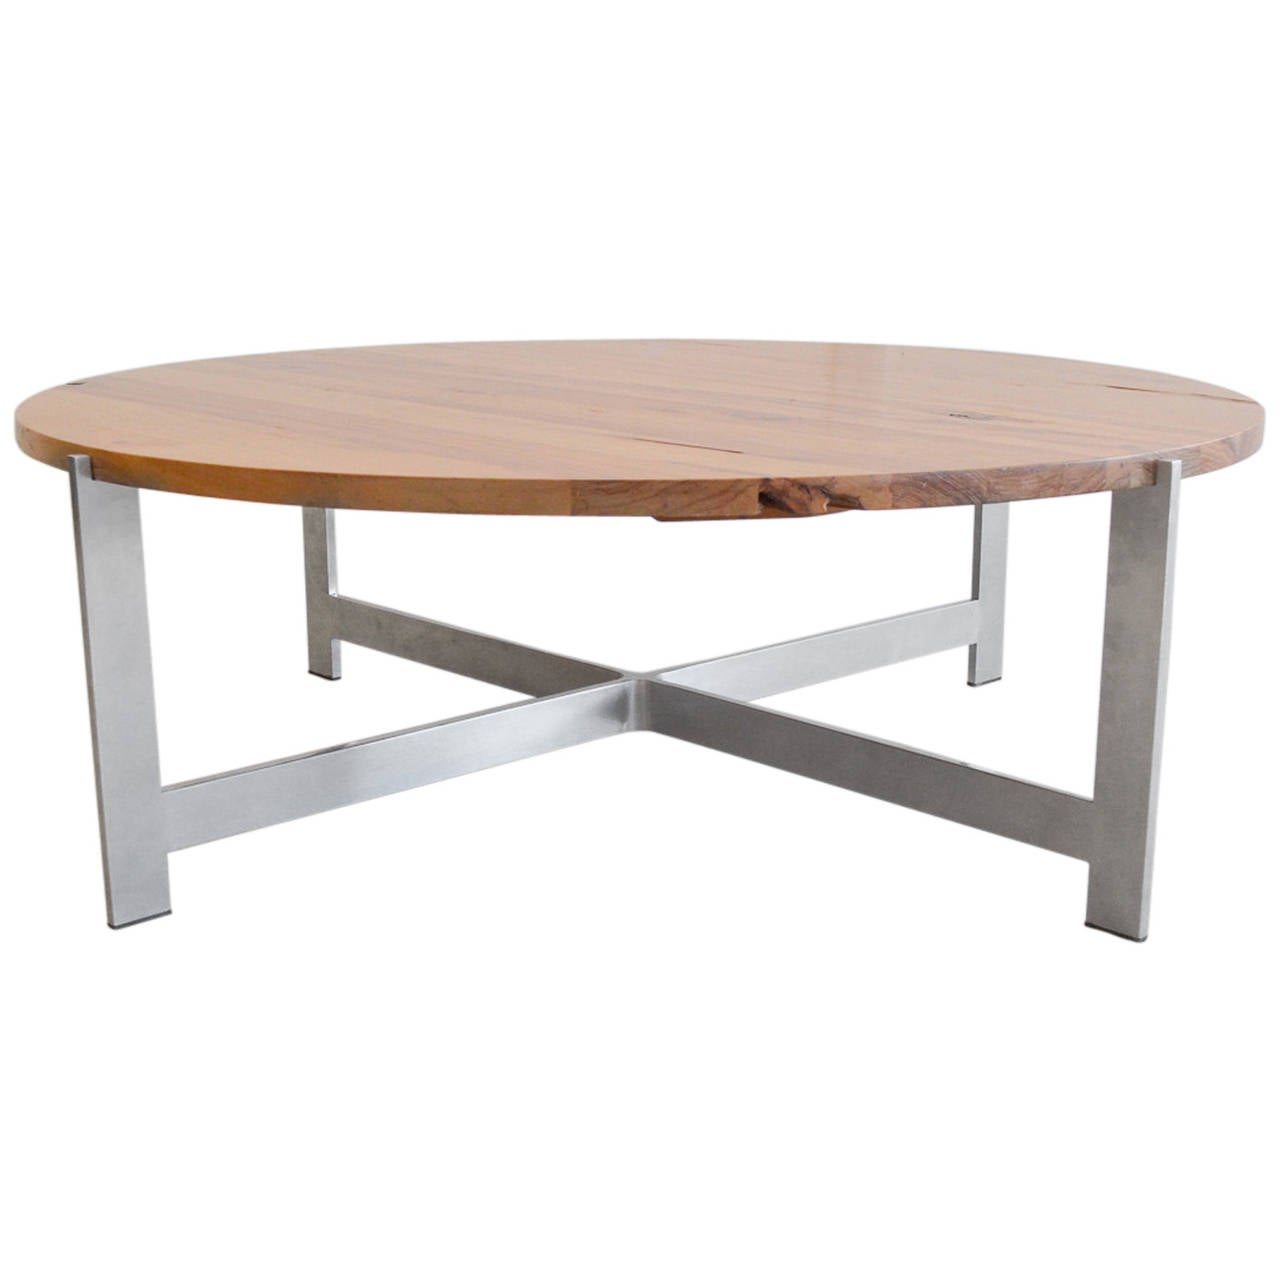 Round wood coffee table with aluminum x base at 1stdibs for X coffee tables